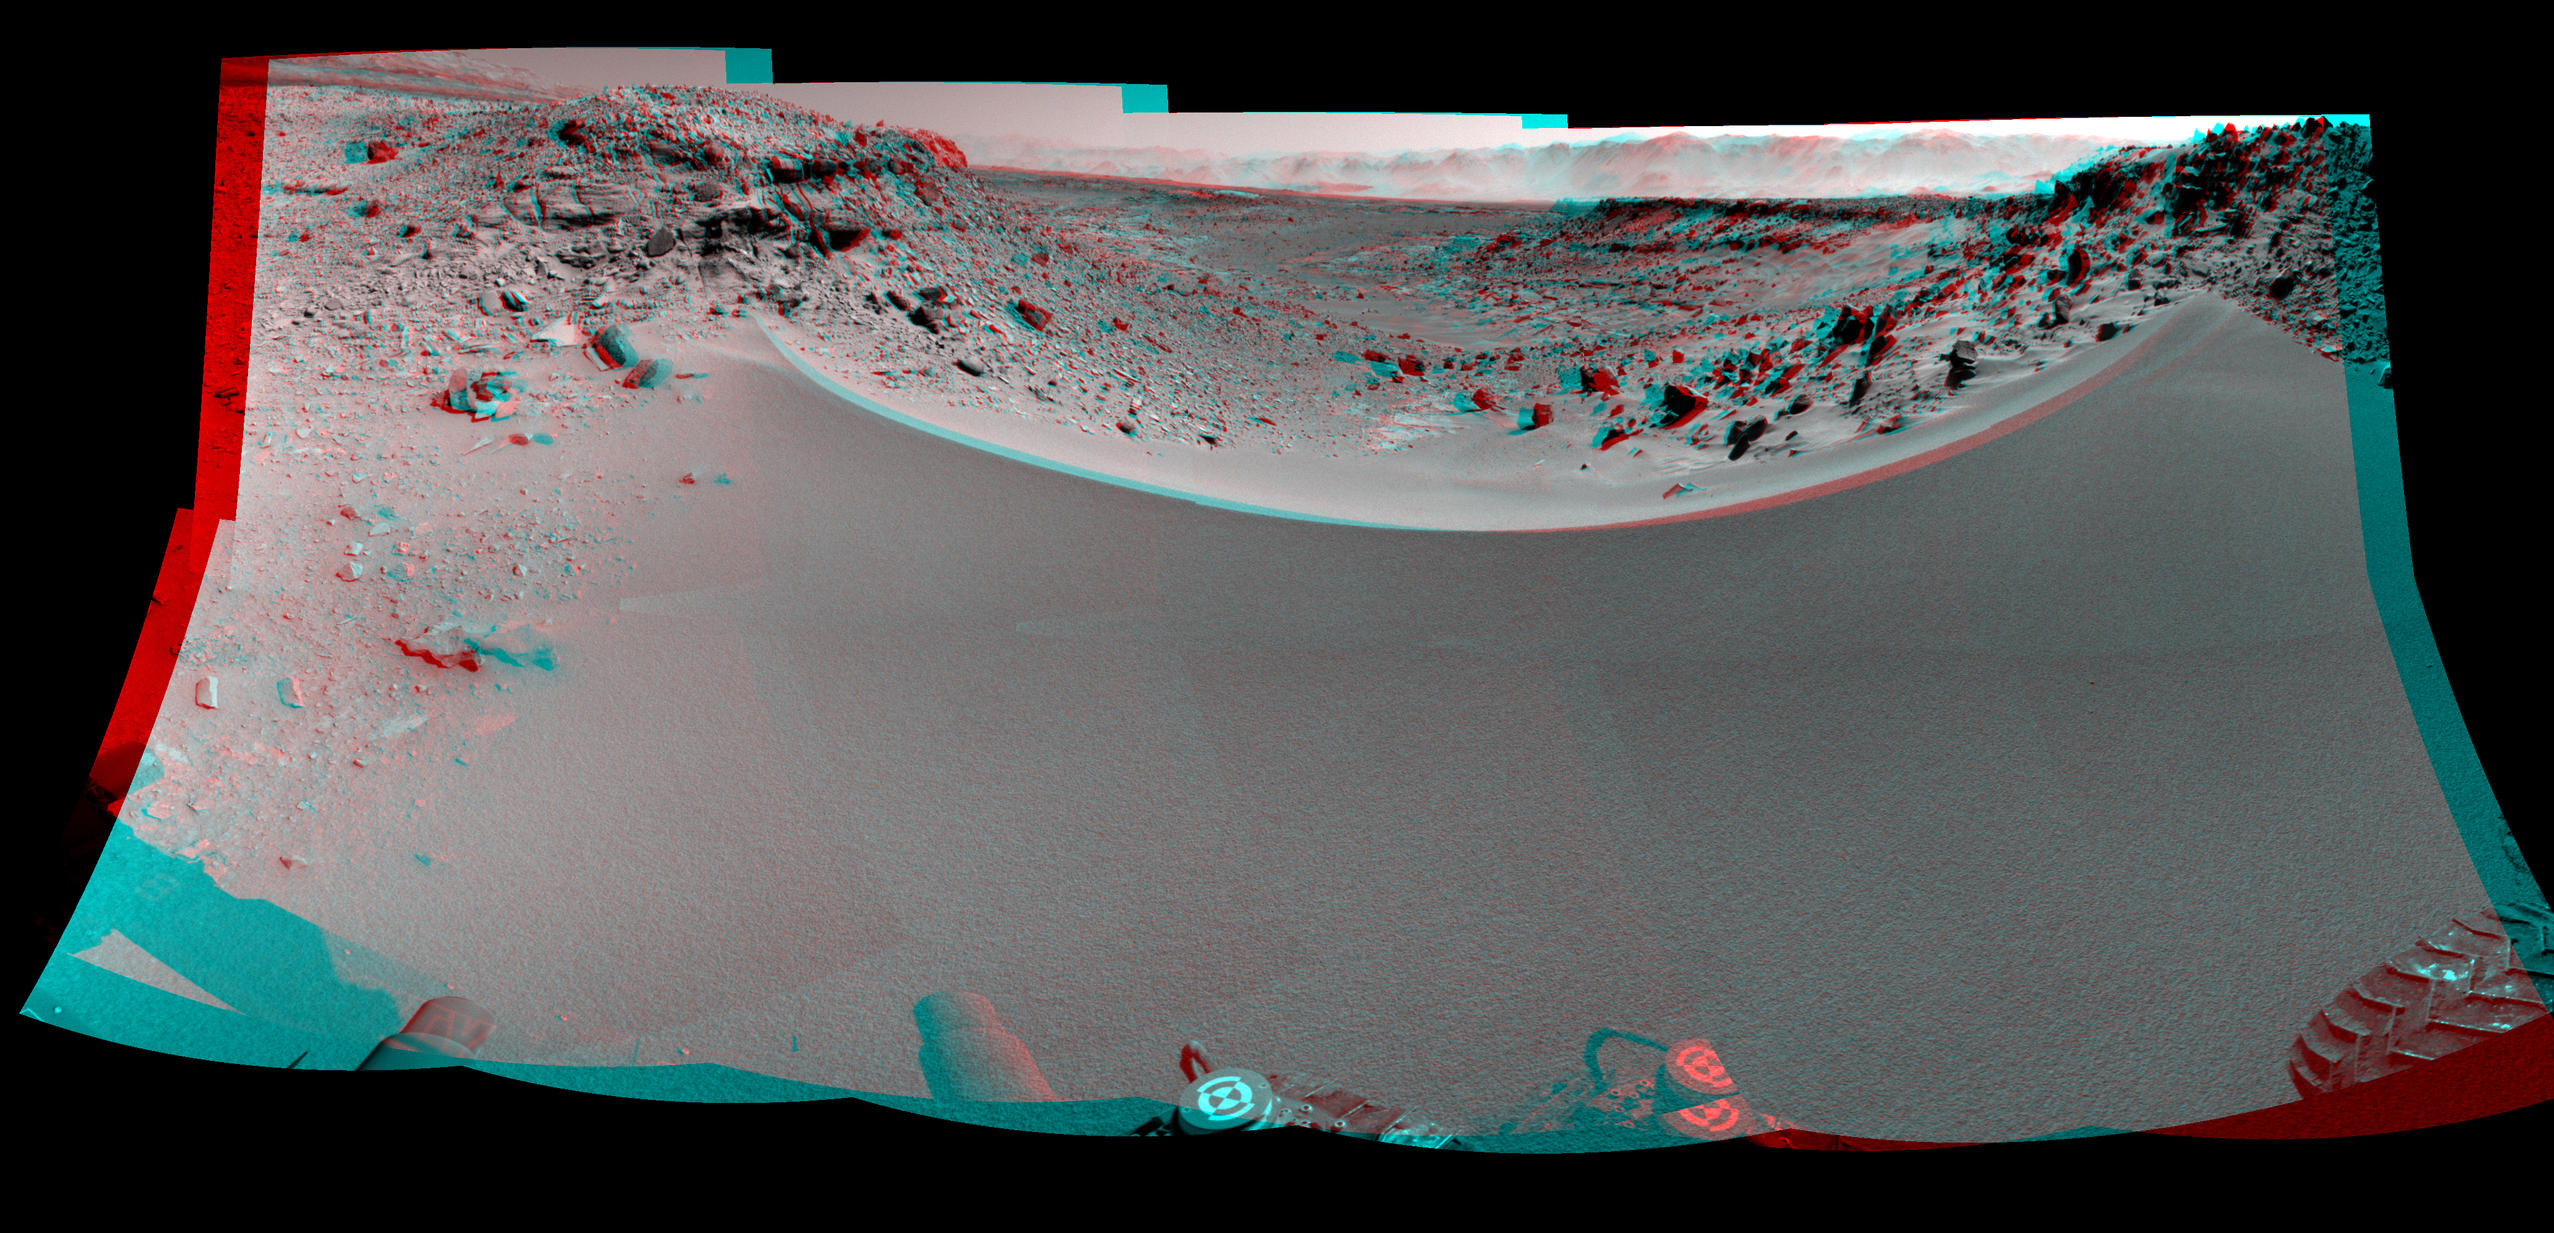 Curiosity's View Past Dune at 'Dingo Gap' (Stereo)